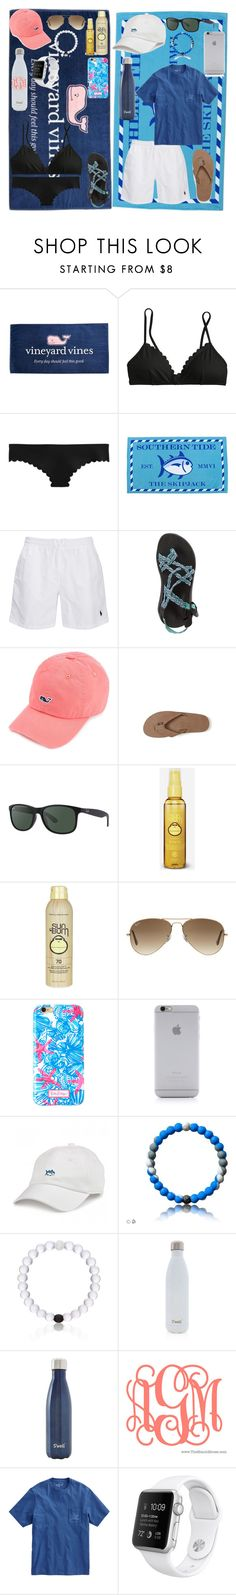 """•contest entry•"" by simply-preppy-girl ❤ liked on Polyvore featuring Vineyard Vines, J.Crew, Chaco, Rainbow, Ray-Ban, Sun Bum, Lilly Pulitzer, Native Union, Everest and S'well"